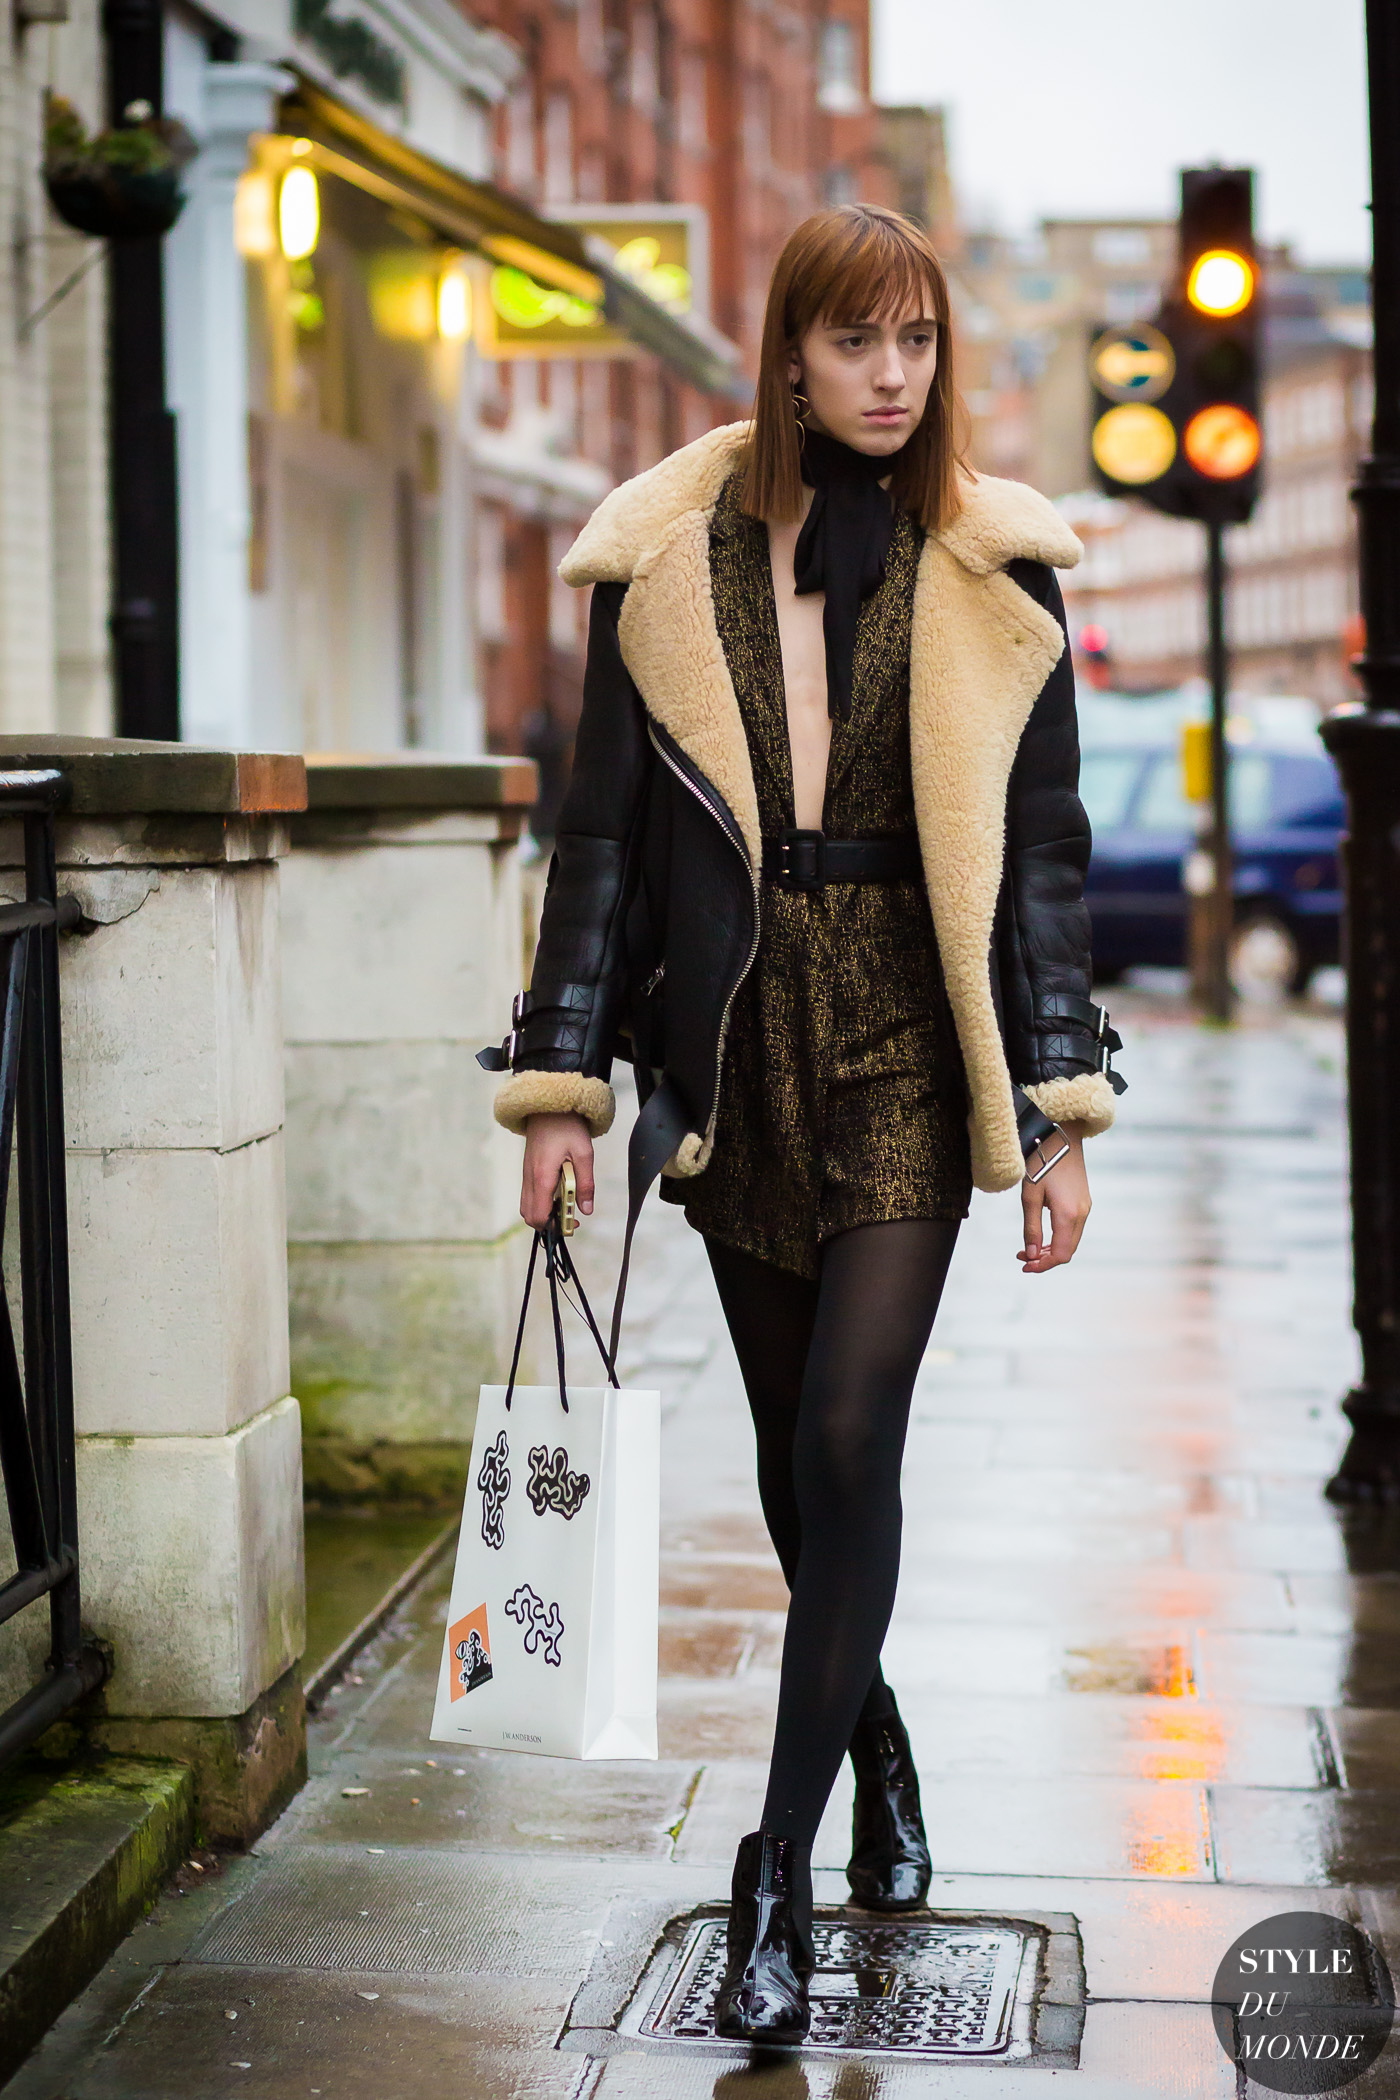 Teddy Quinlivan Street Style Street Fashion Streetsnaps by STYLEDUMONDE Street Style Fashion Photography